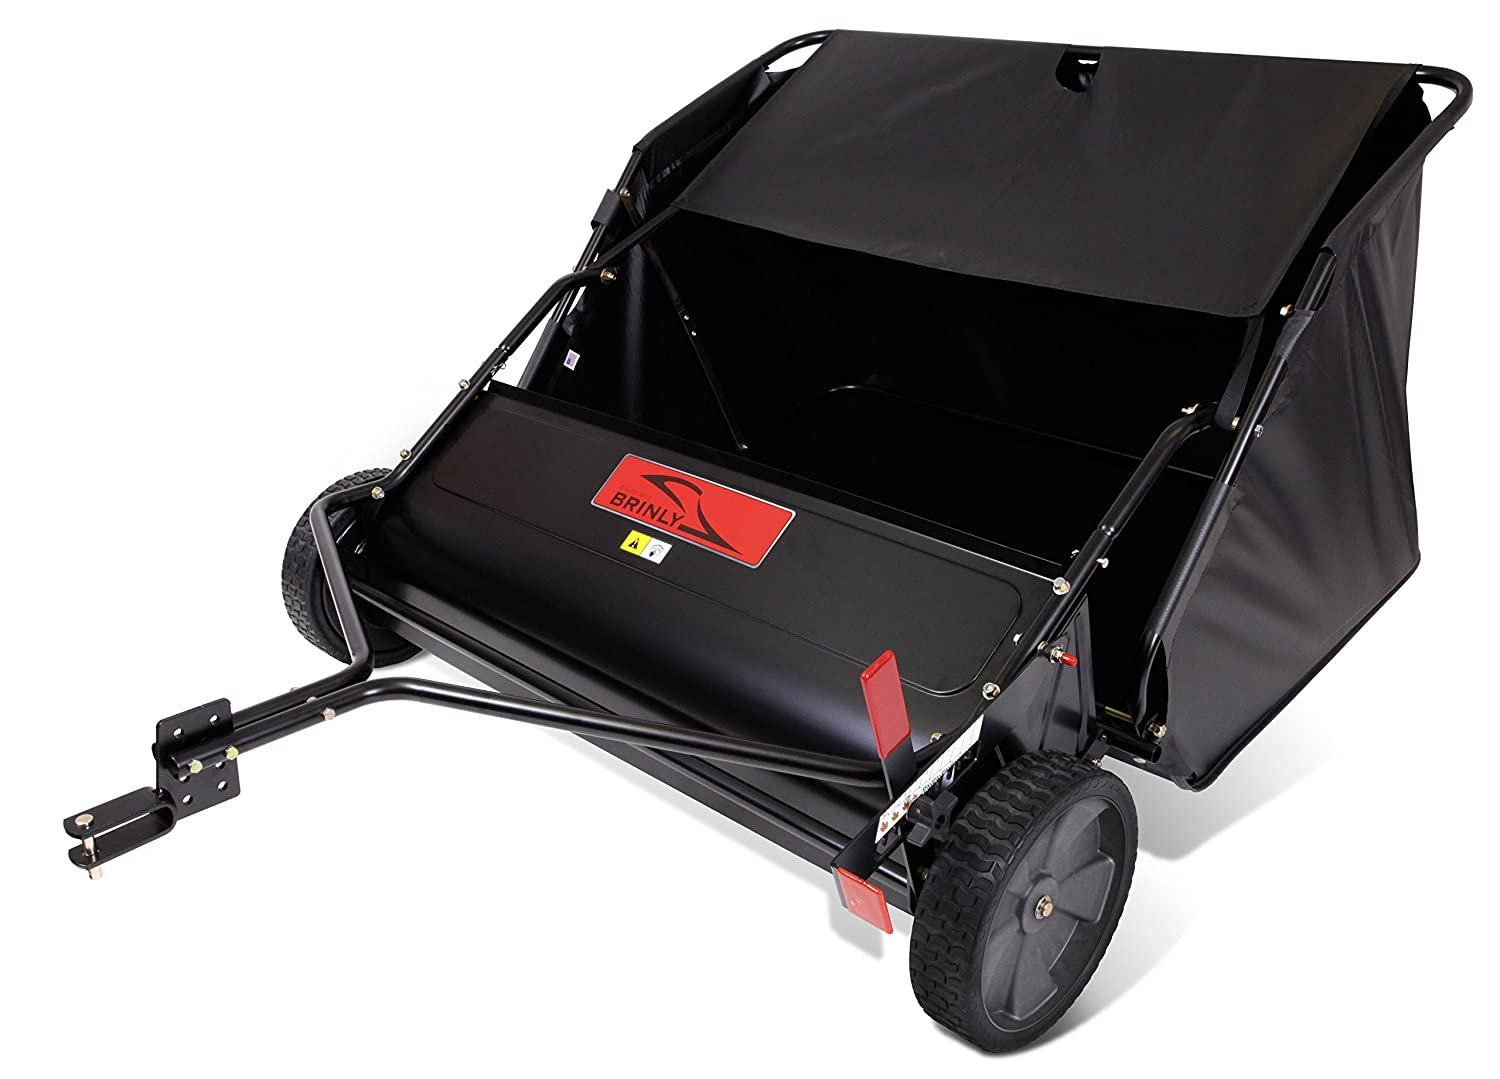 best lawn sweeper - Brinly STS-427LXH 20 Cubic Feet Tow Behind Lawn Sweeper, 42-Inch